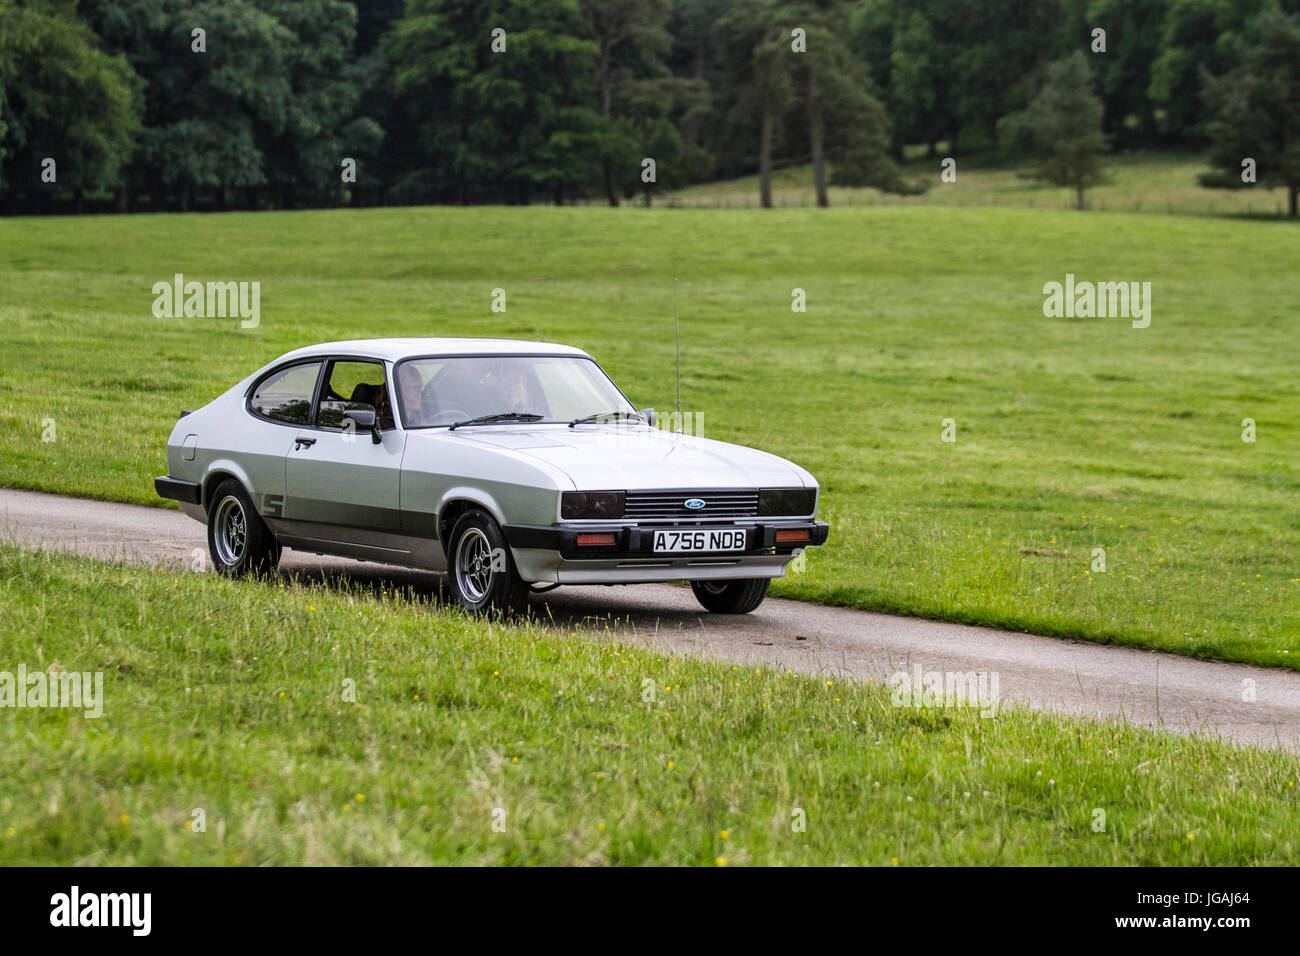 1984 Ford Capri S 5spd_Classic, collectable restored vintage vehicles arriving for the Mark Woodward Event at Leighton - Stock Image